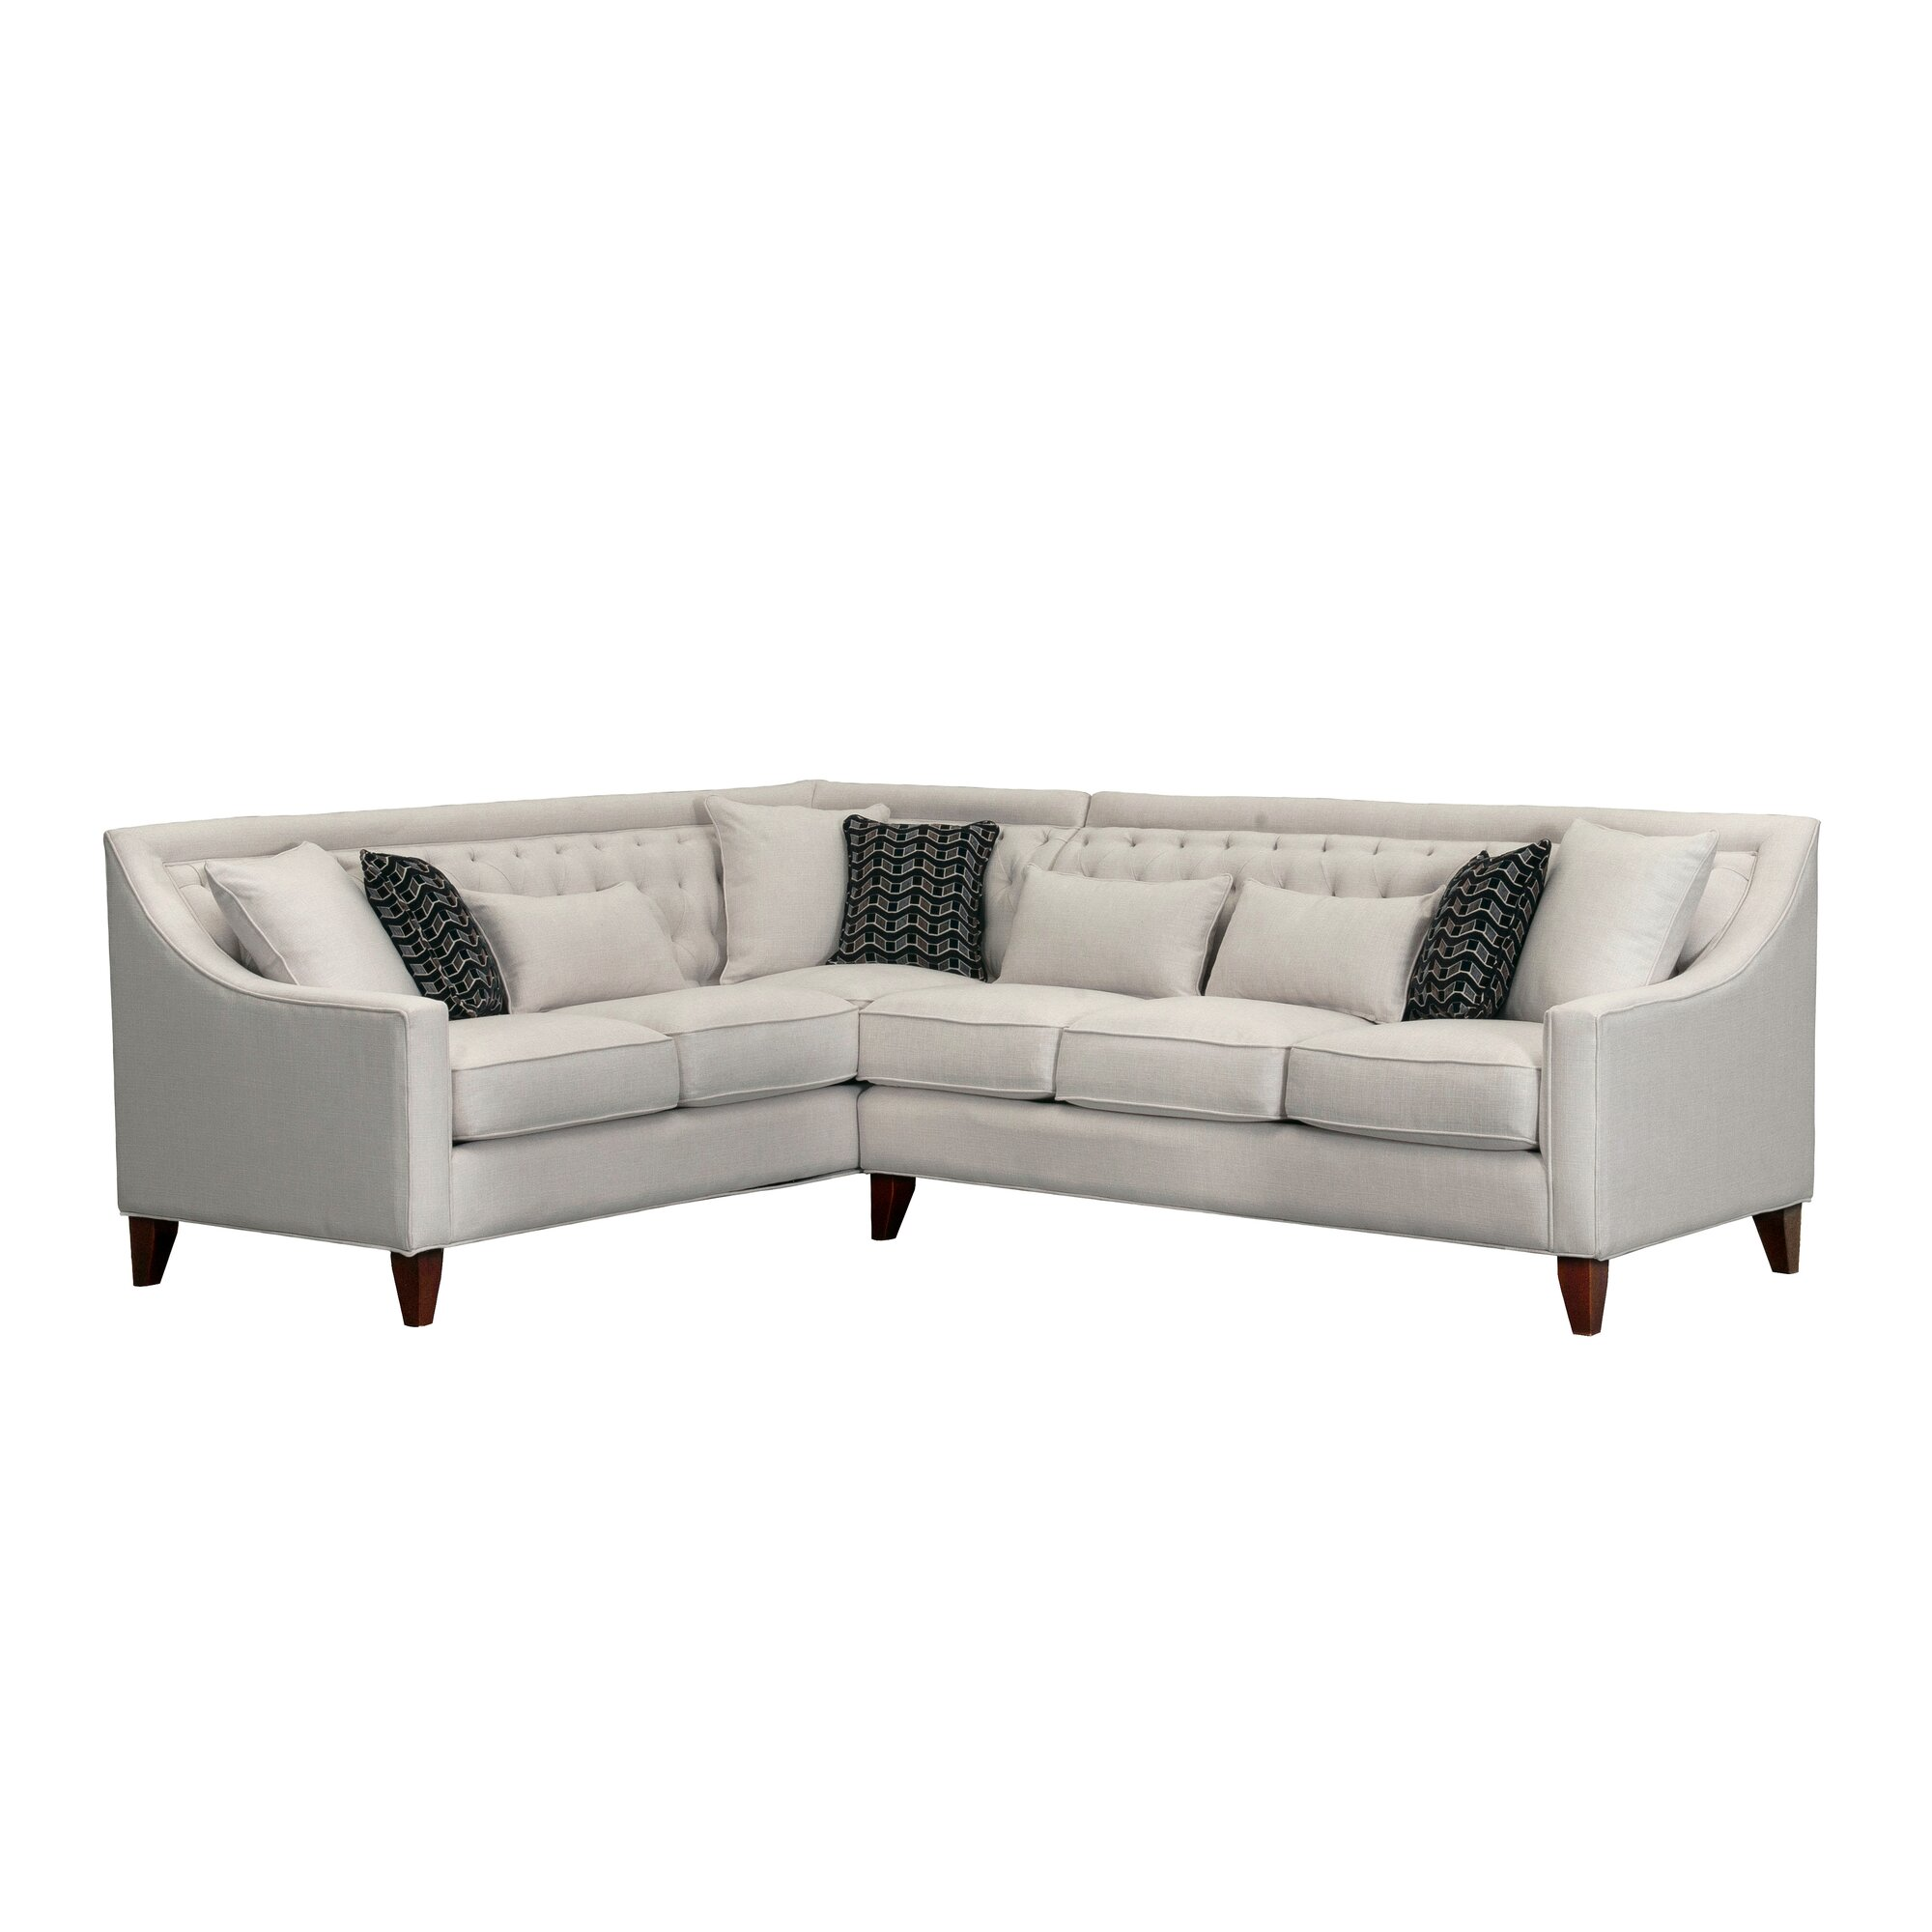 Tufted Sectional View Full Size With Tufted Sectional Best